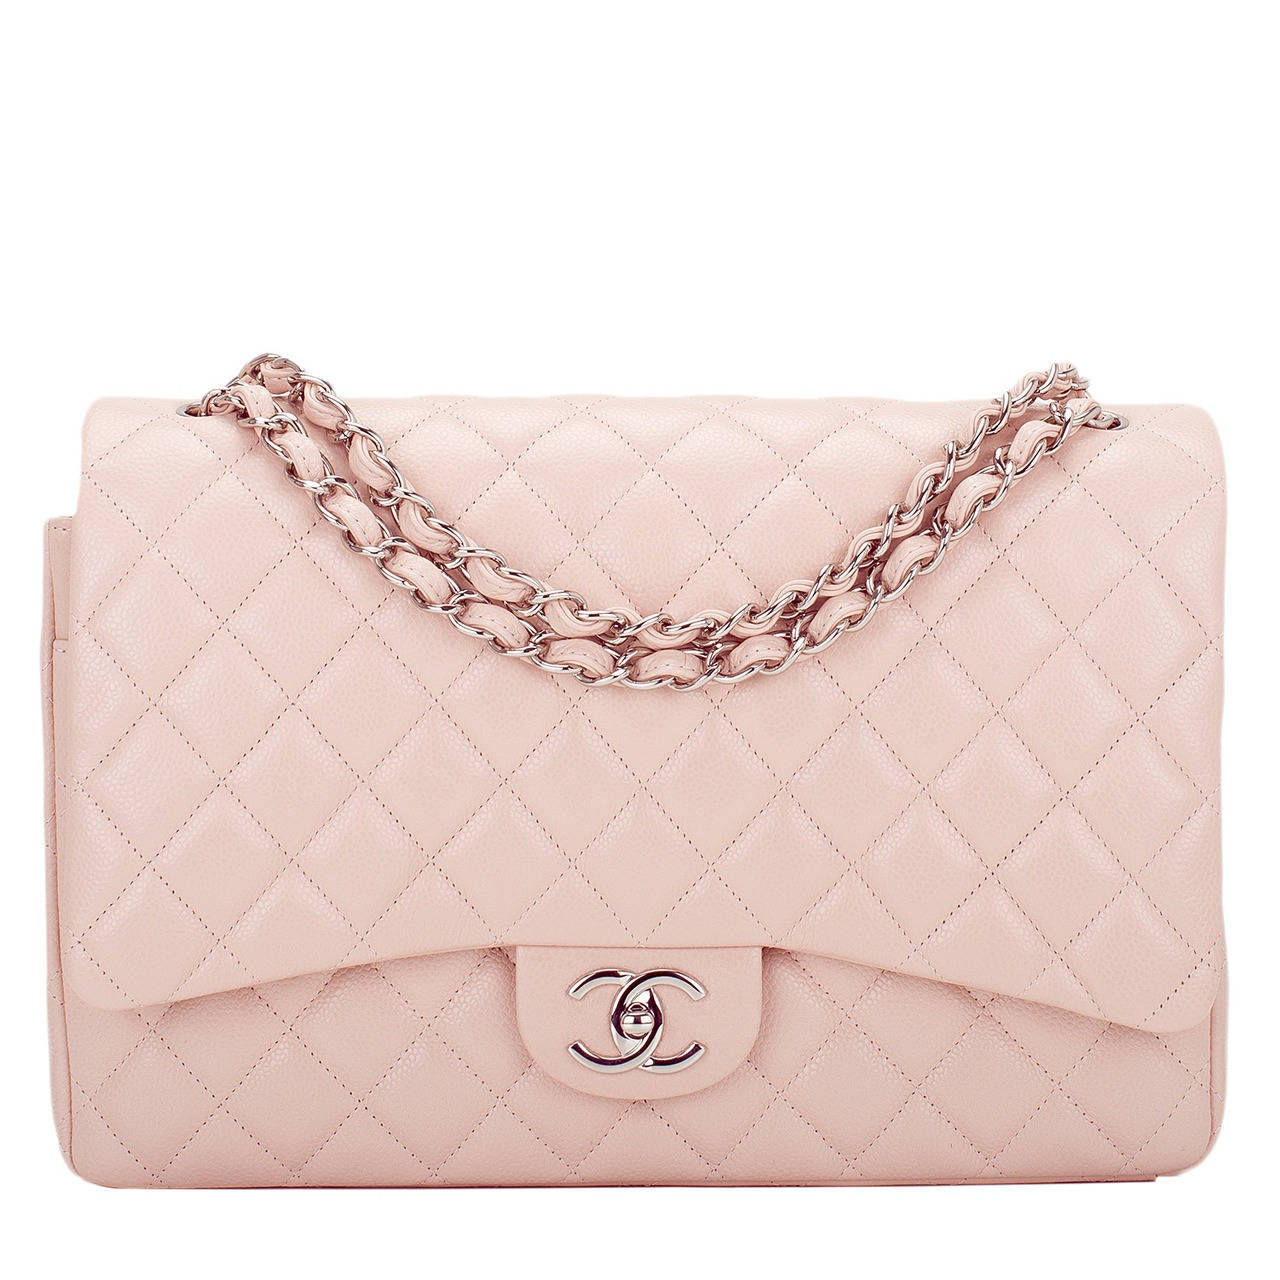 Chanel Light Pink Quilted Caviar Maxi Classic Double Flap Bag For Sale